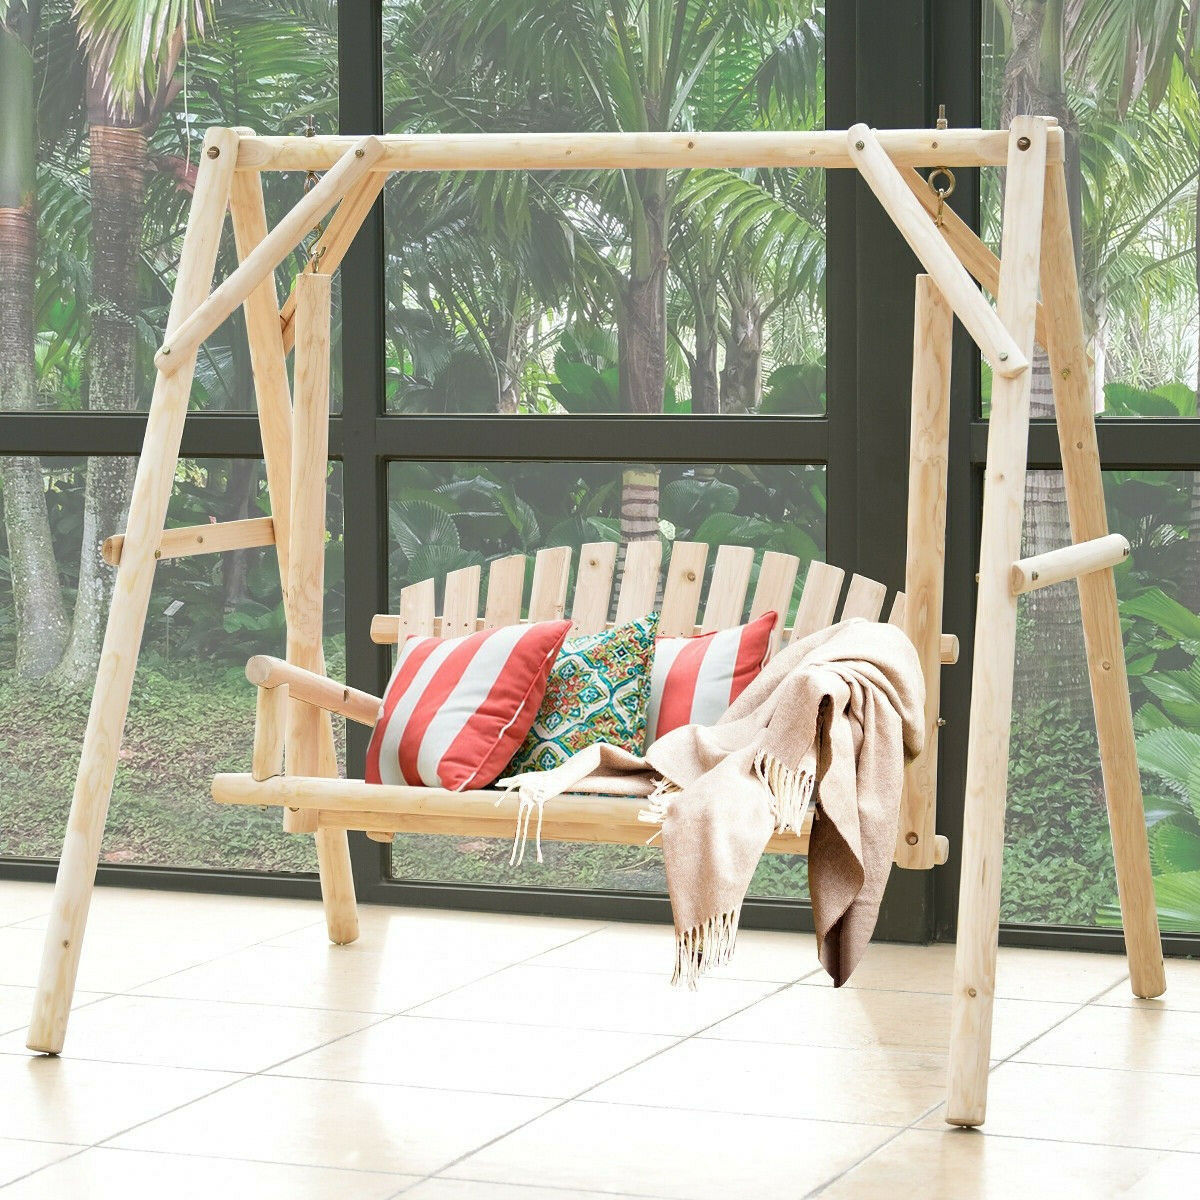 Patio Swing with Stand Rustic Natural Wood Hanging Bench Porch 2 Seater Glider